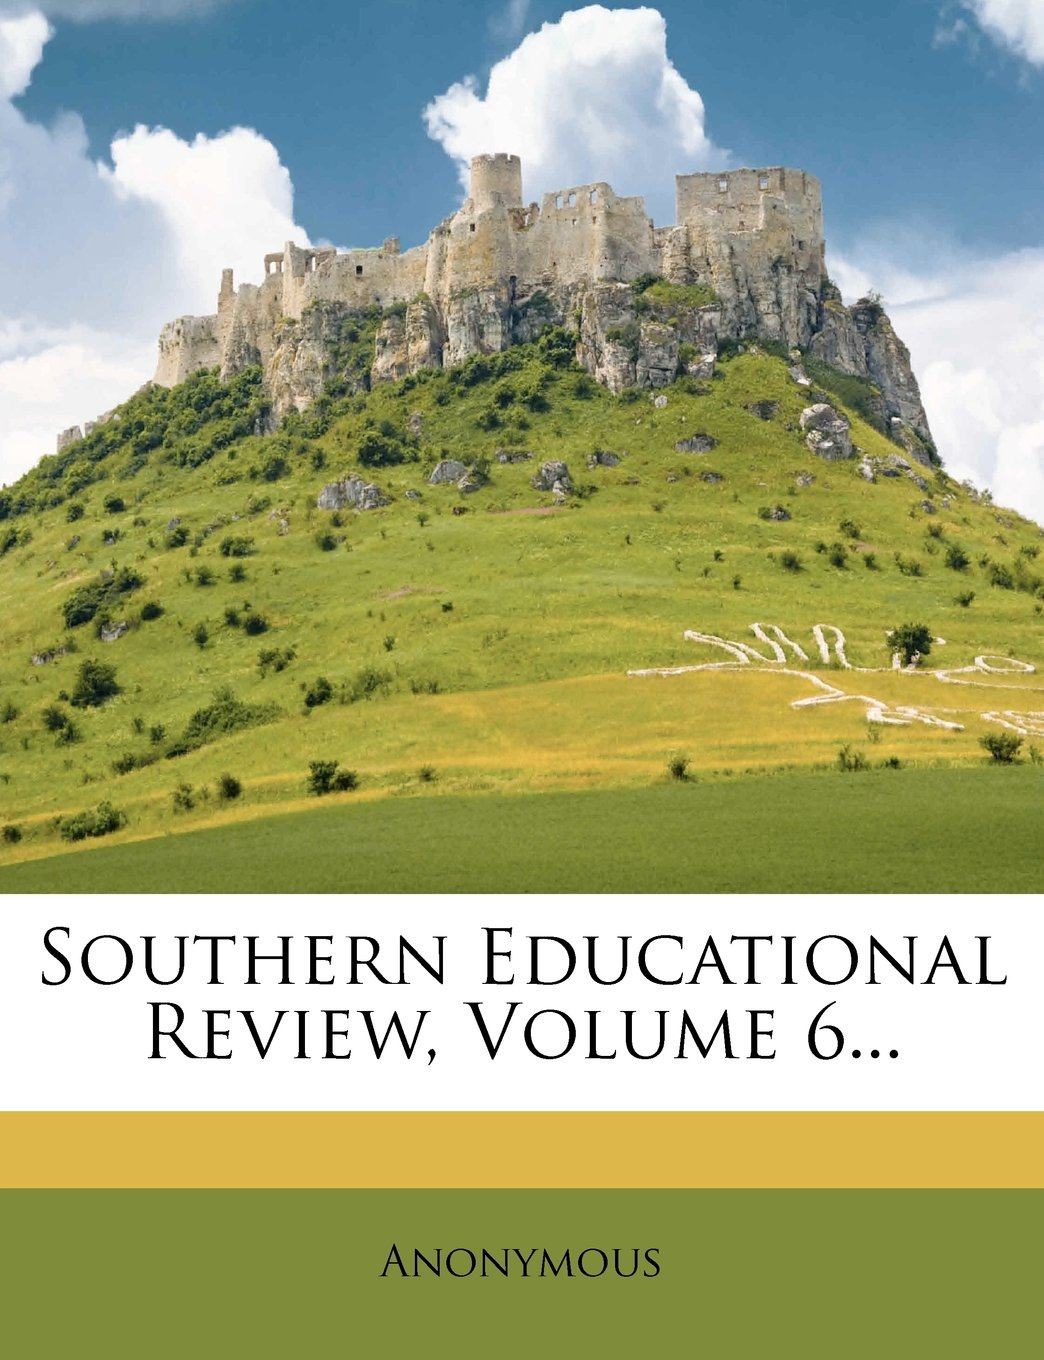 Southern Educational Review, Volume 6... Text fb2 book